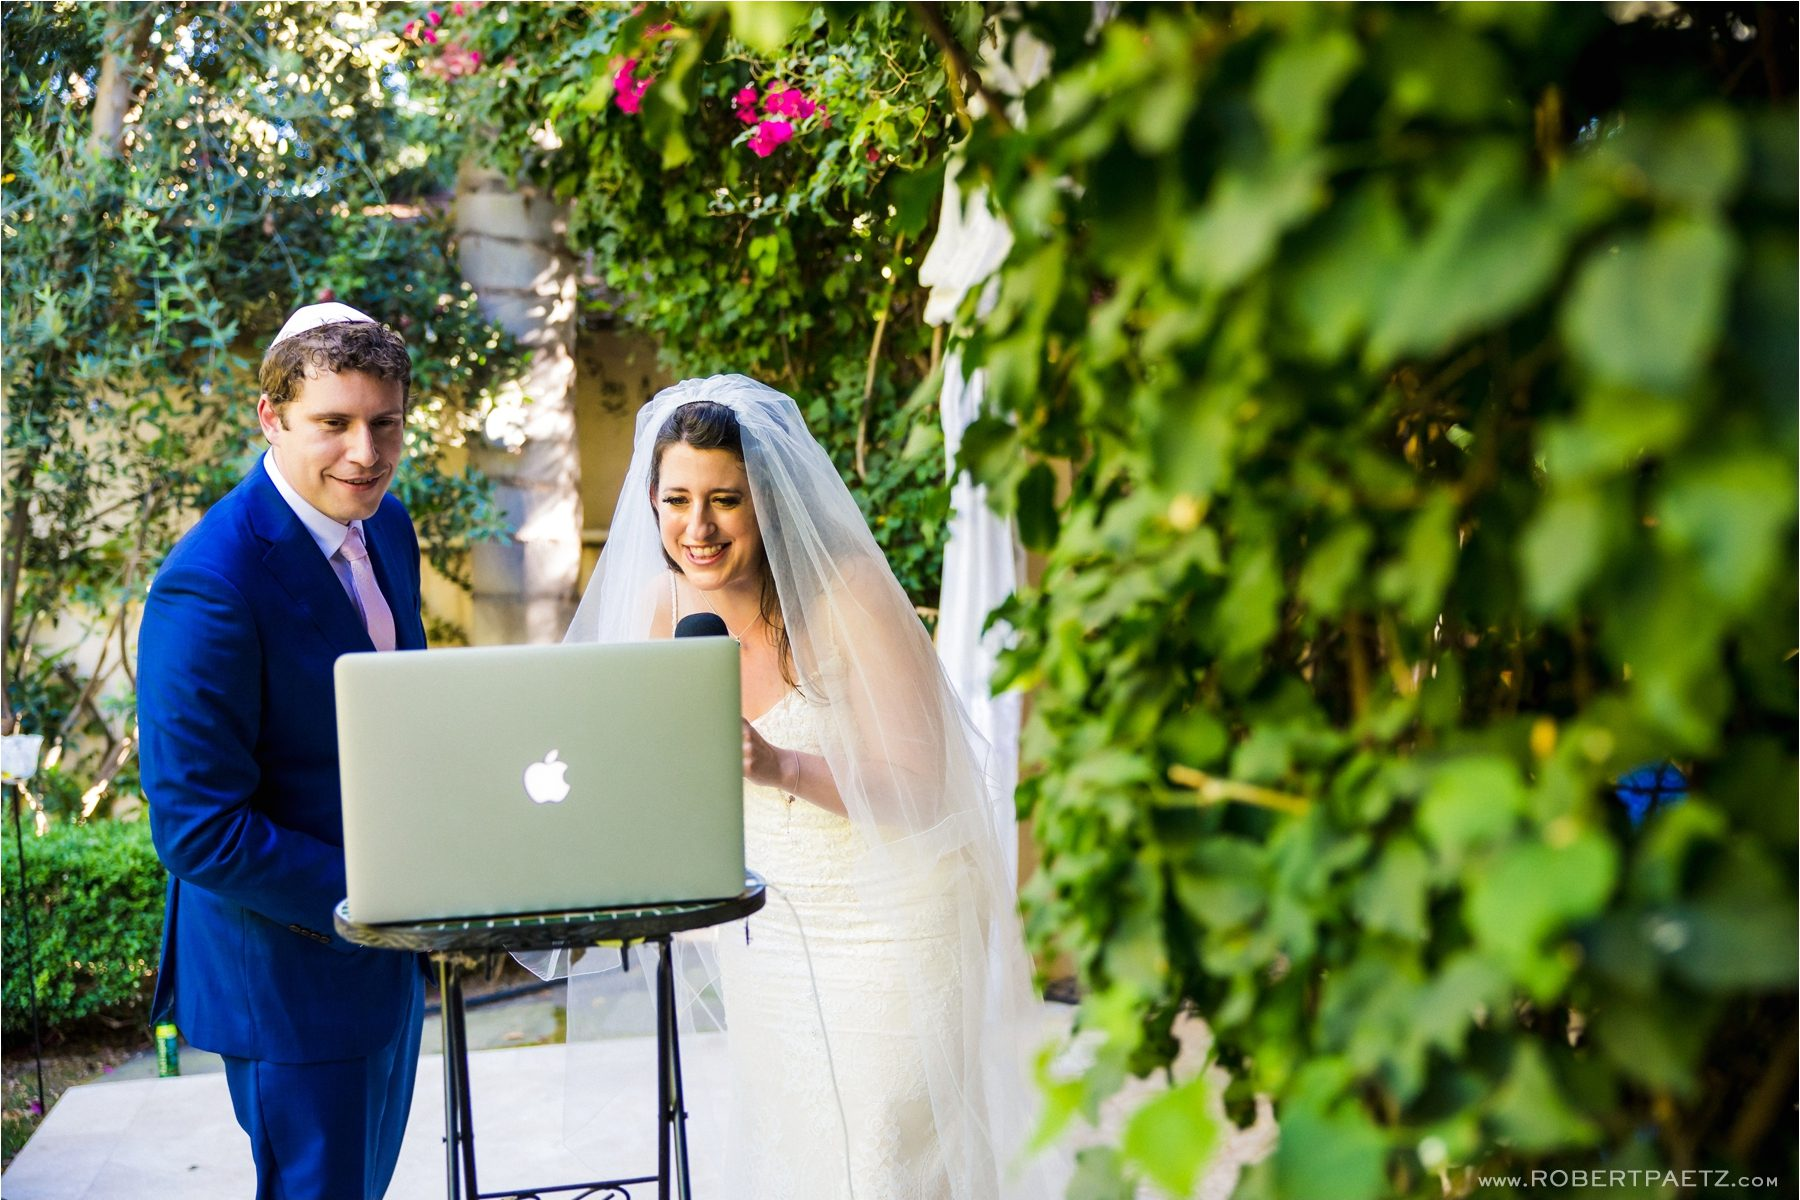 A backyard, social distanced, Zoom wedding in Los Angeles, California, during the Covid-19 pandemic photographed by the destination wedding photographer, Robert Paetz.